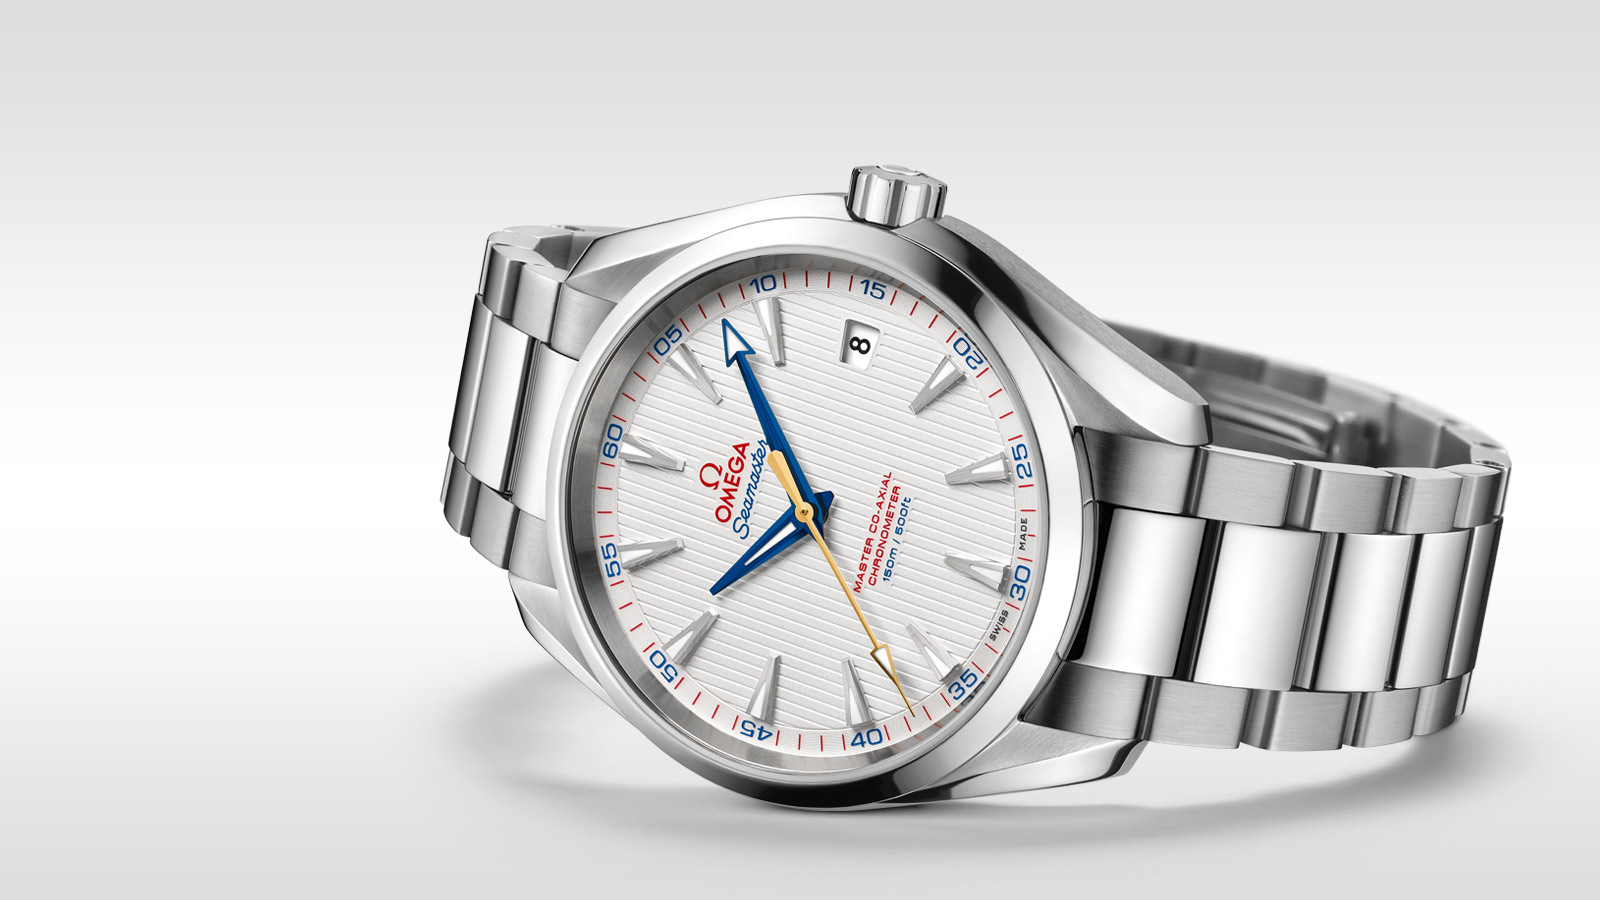 Seamaster アクアテラ 150M Aqua Terra 150M Omega Master Co‑Axial 41.5 mm - 231.10.42.21.02.004 - ビュー 1